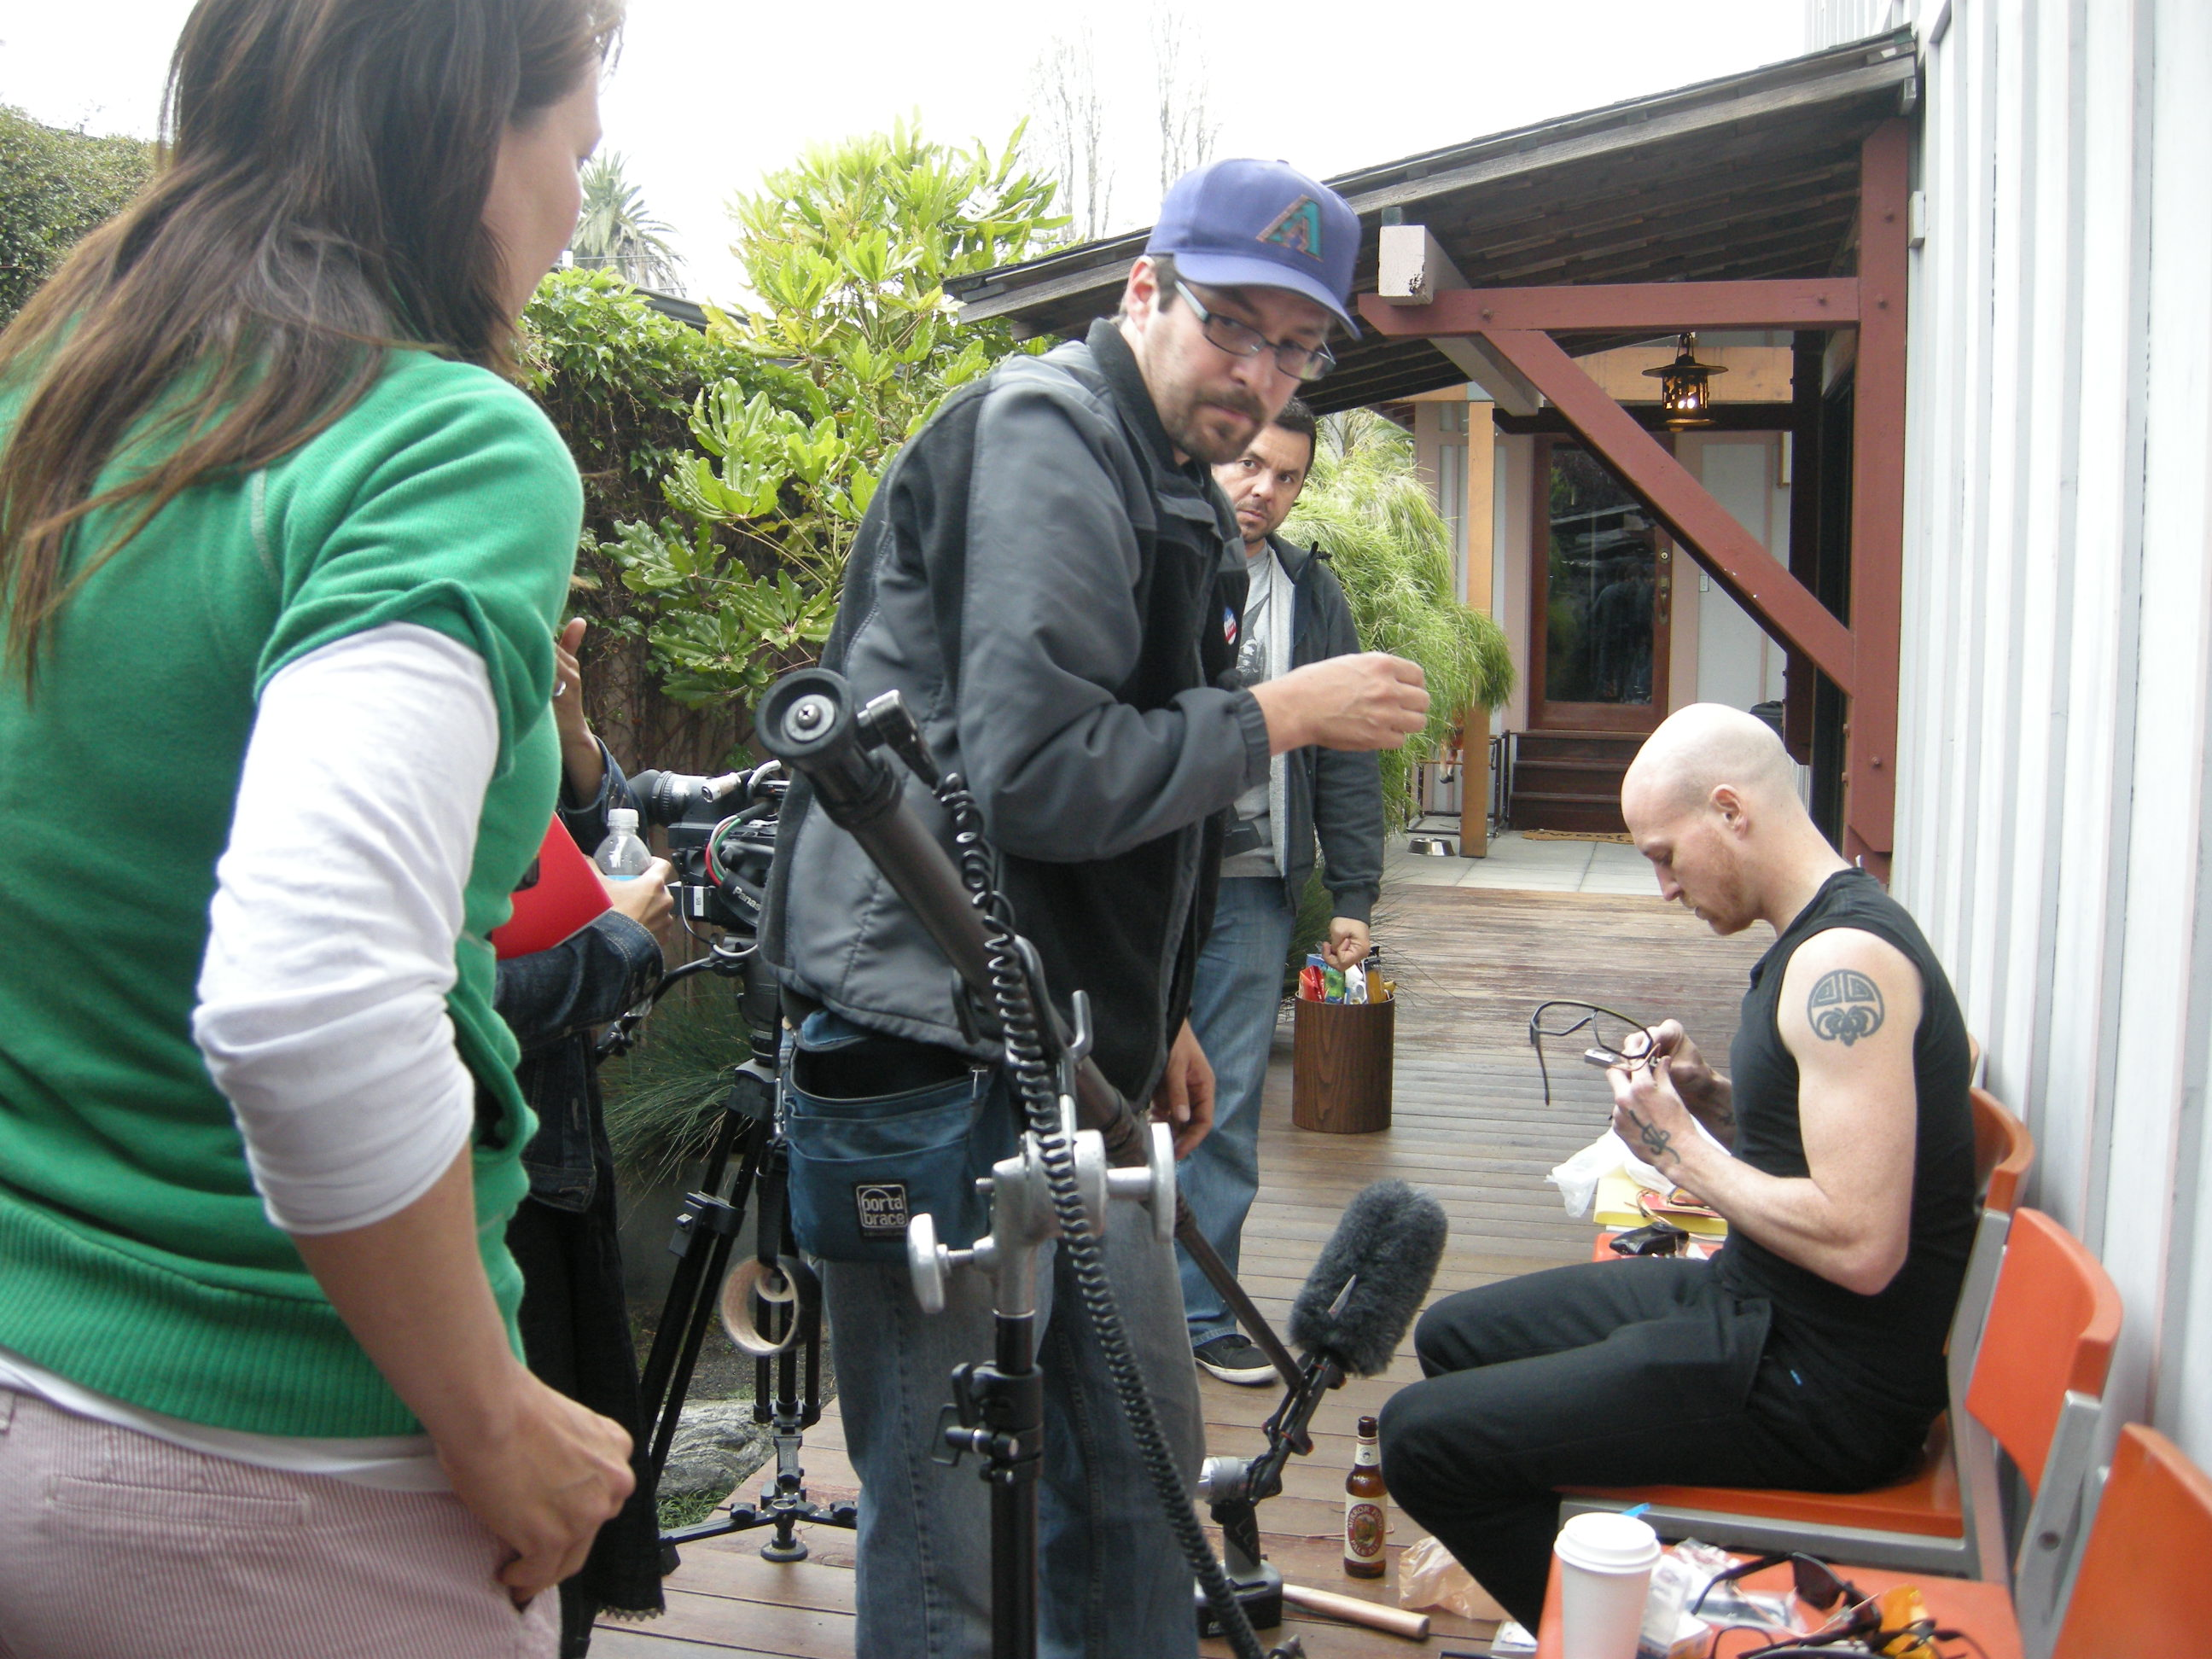 Jose Cabaco and Caskey Ebeling directing the documentary, starring James Powderly in the wife-beater.